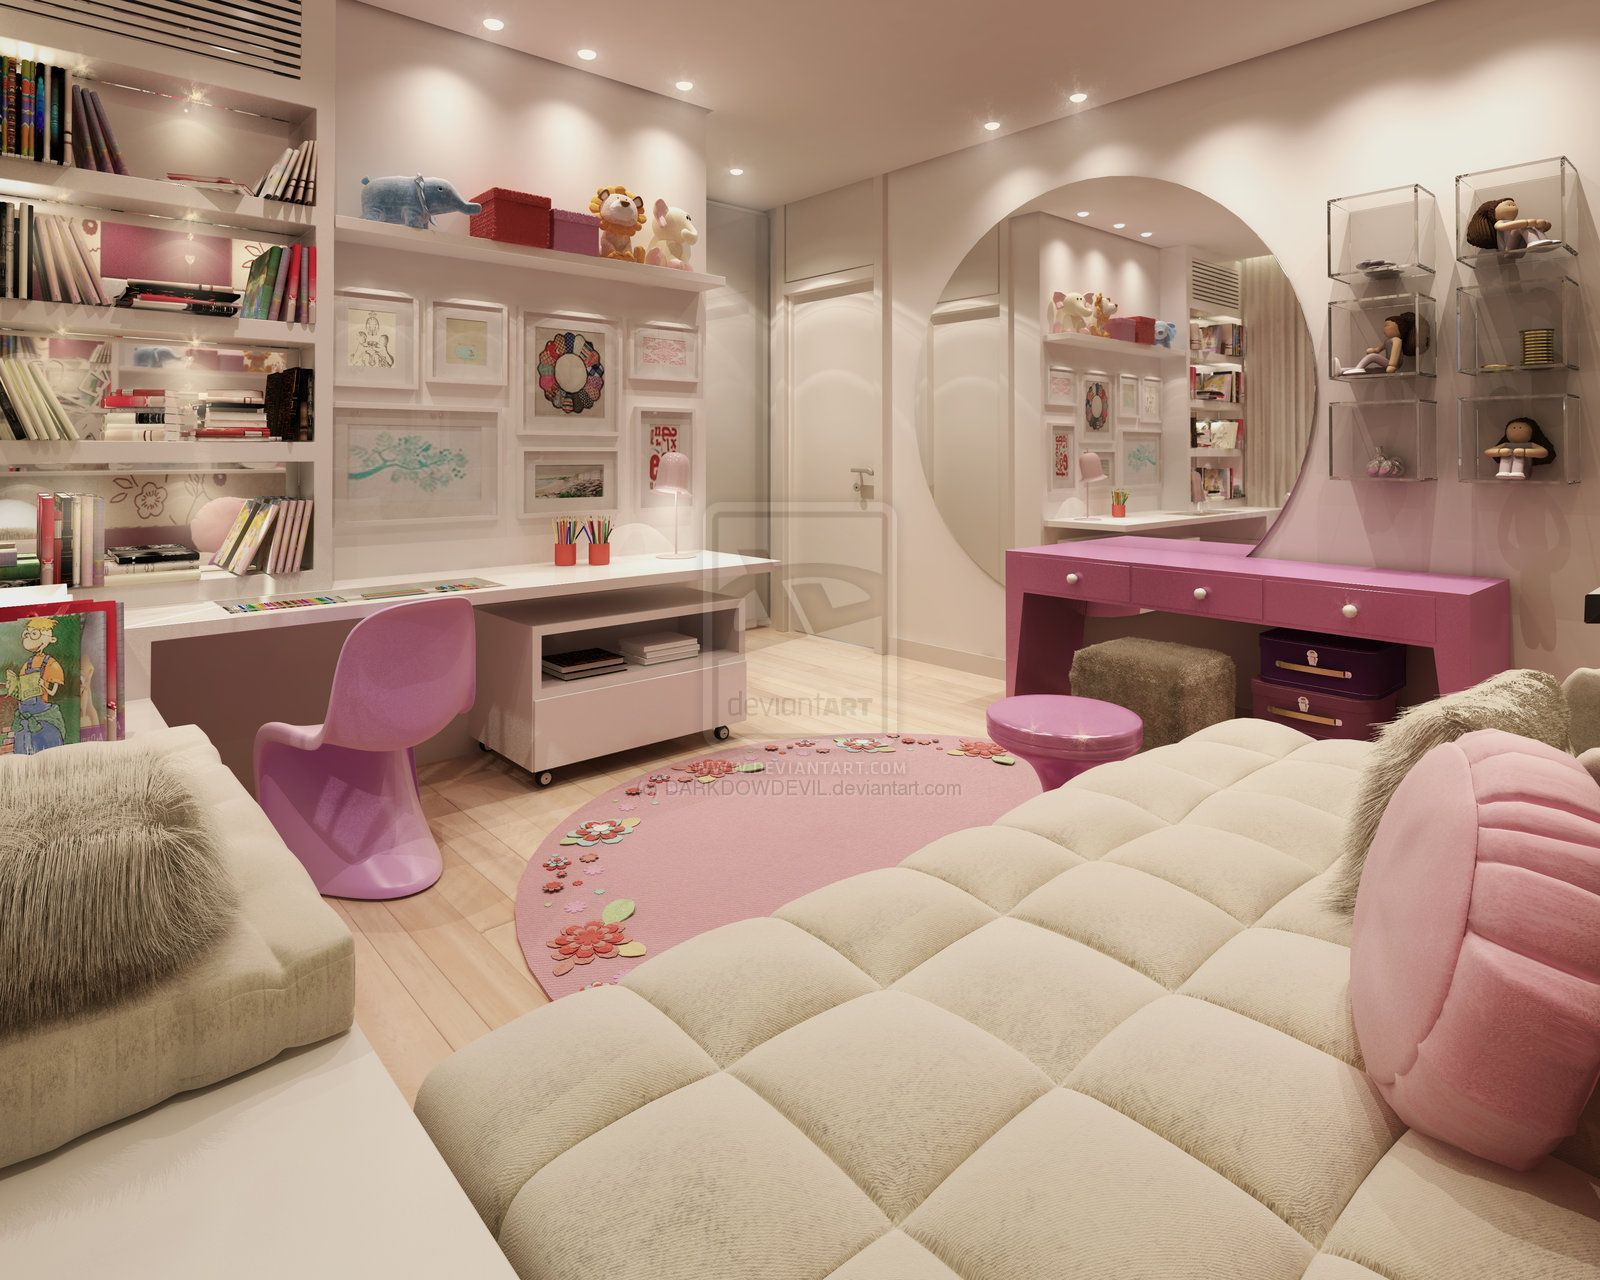 Awesome bedroom ideas for teenage girls - 30 Dream Interior Design Ideas For Teenage Girl S Rooms